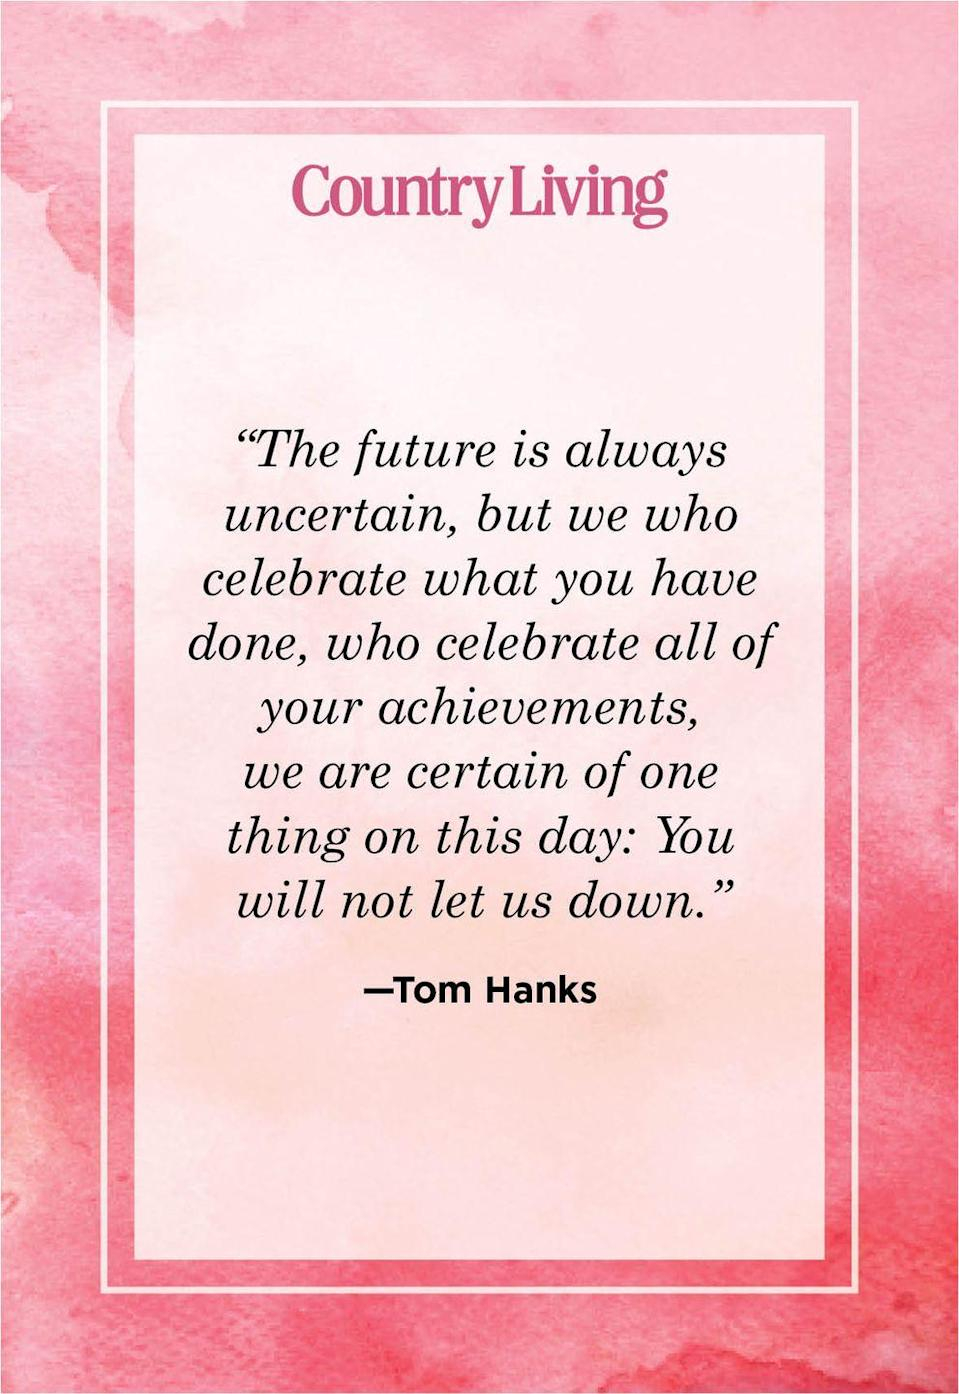 """<p>""""The future is always uncertain, but we who celebrate what you have done, who celebrate all of your achievements, we are certain of one thing on this day: You will not let us down.""""</p>"""